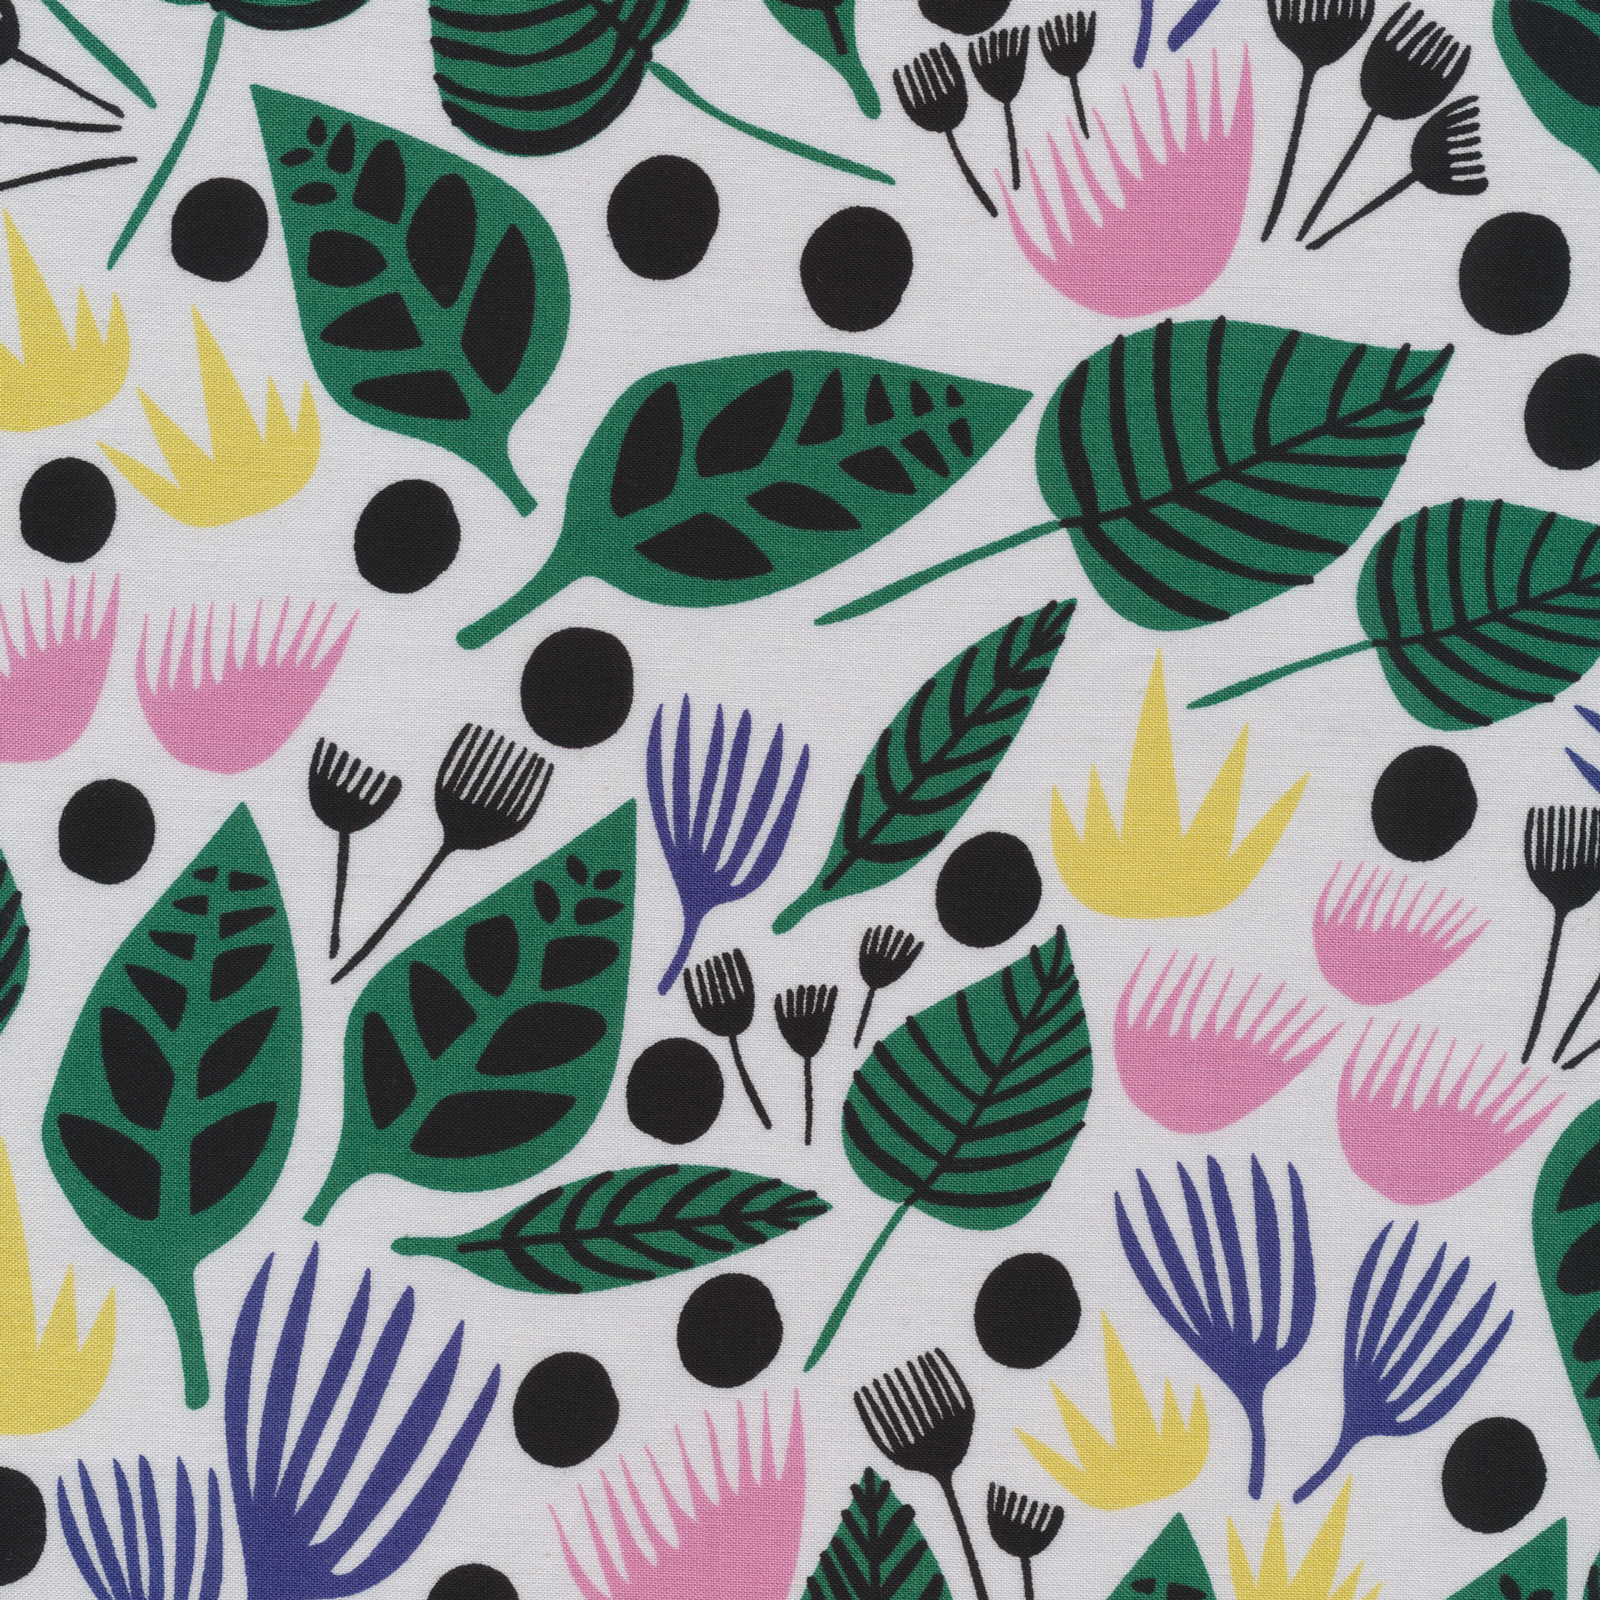 Canopy from the Wild collection by Cloud9 Fabrics, 100% organic cotton fabric